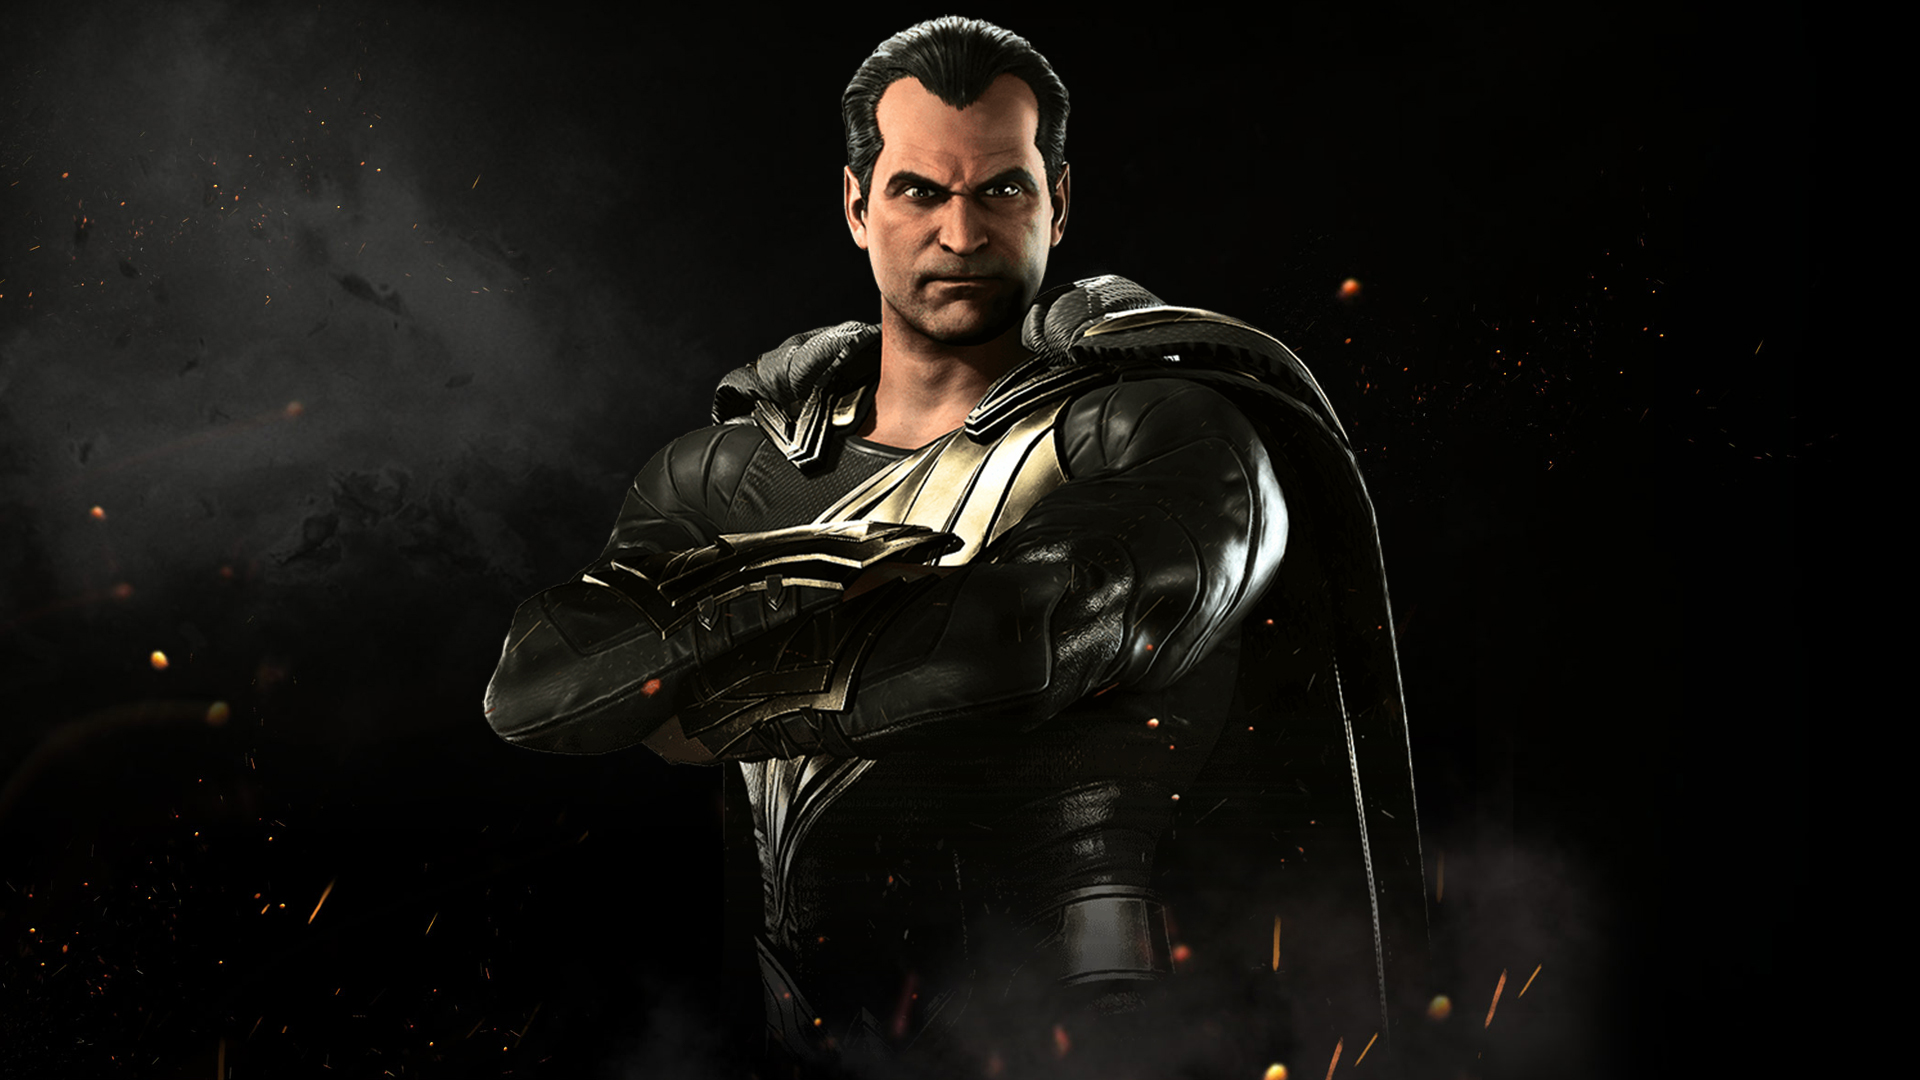 cool-Black-Adam-Injustice-Game-1920x1080-wallpaper-wp3604259